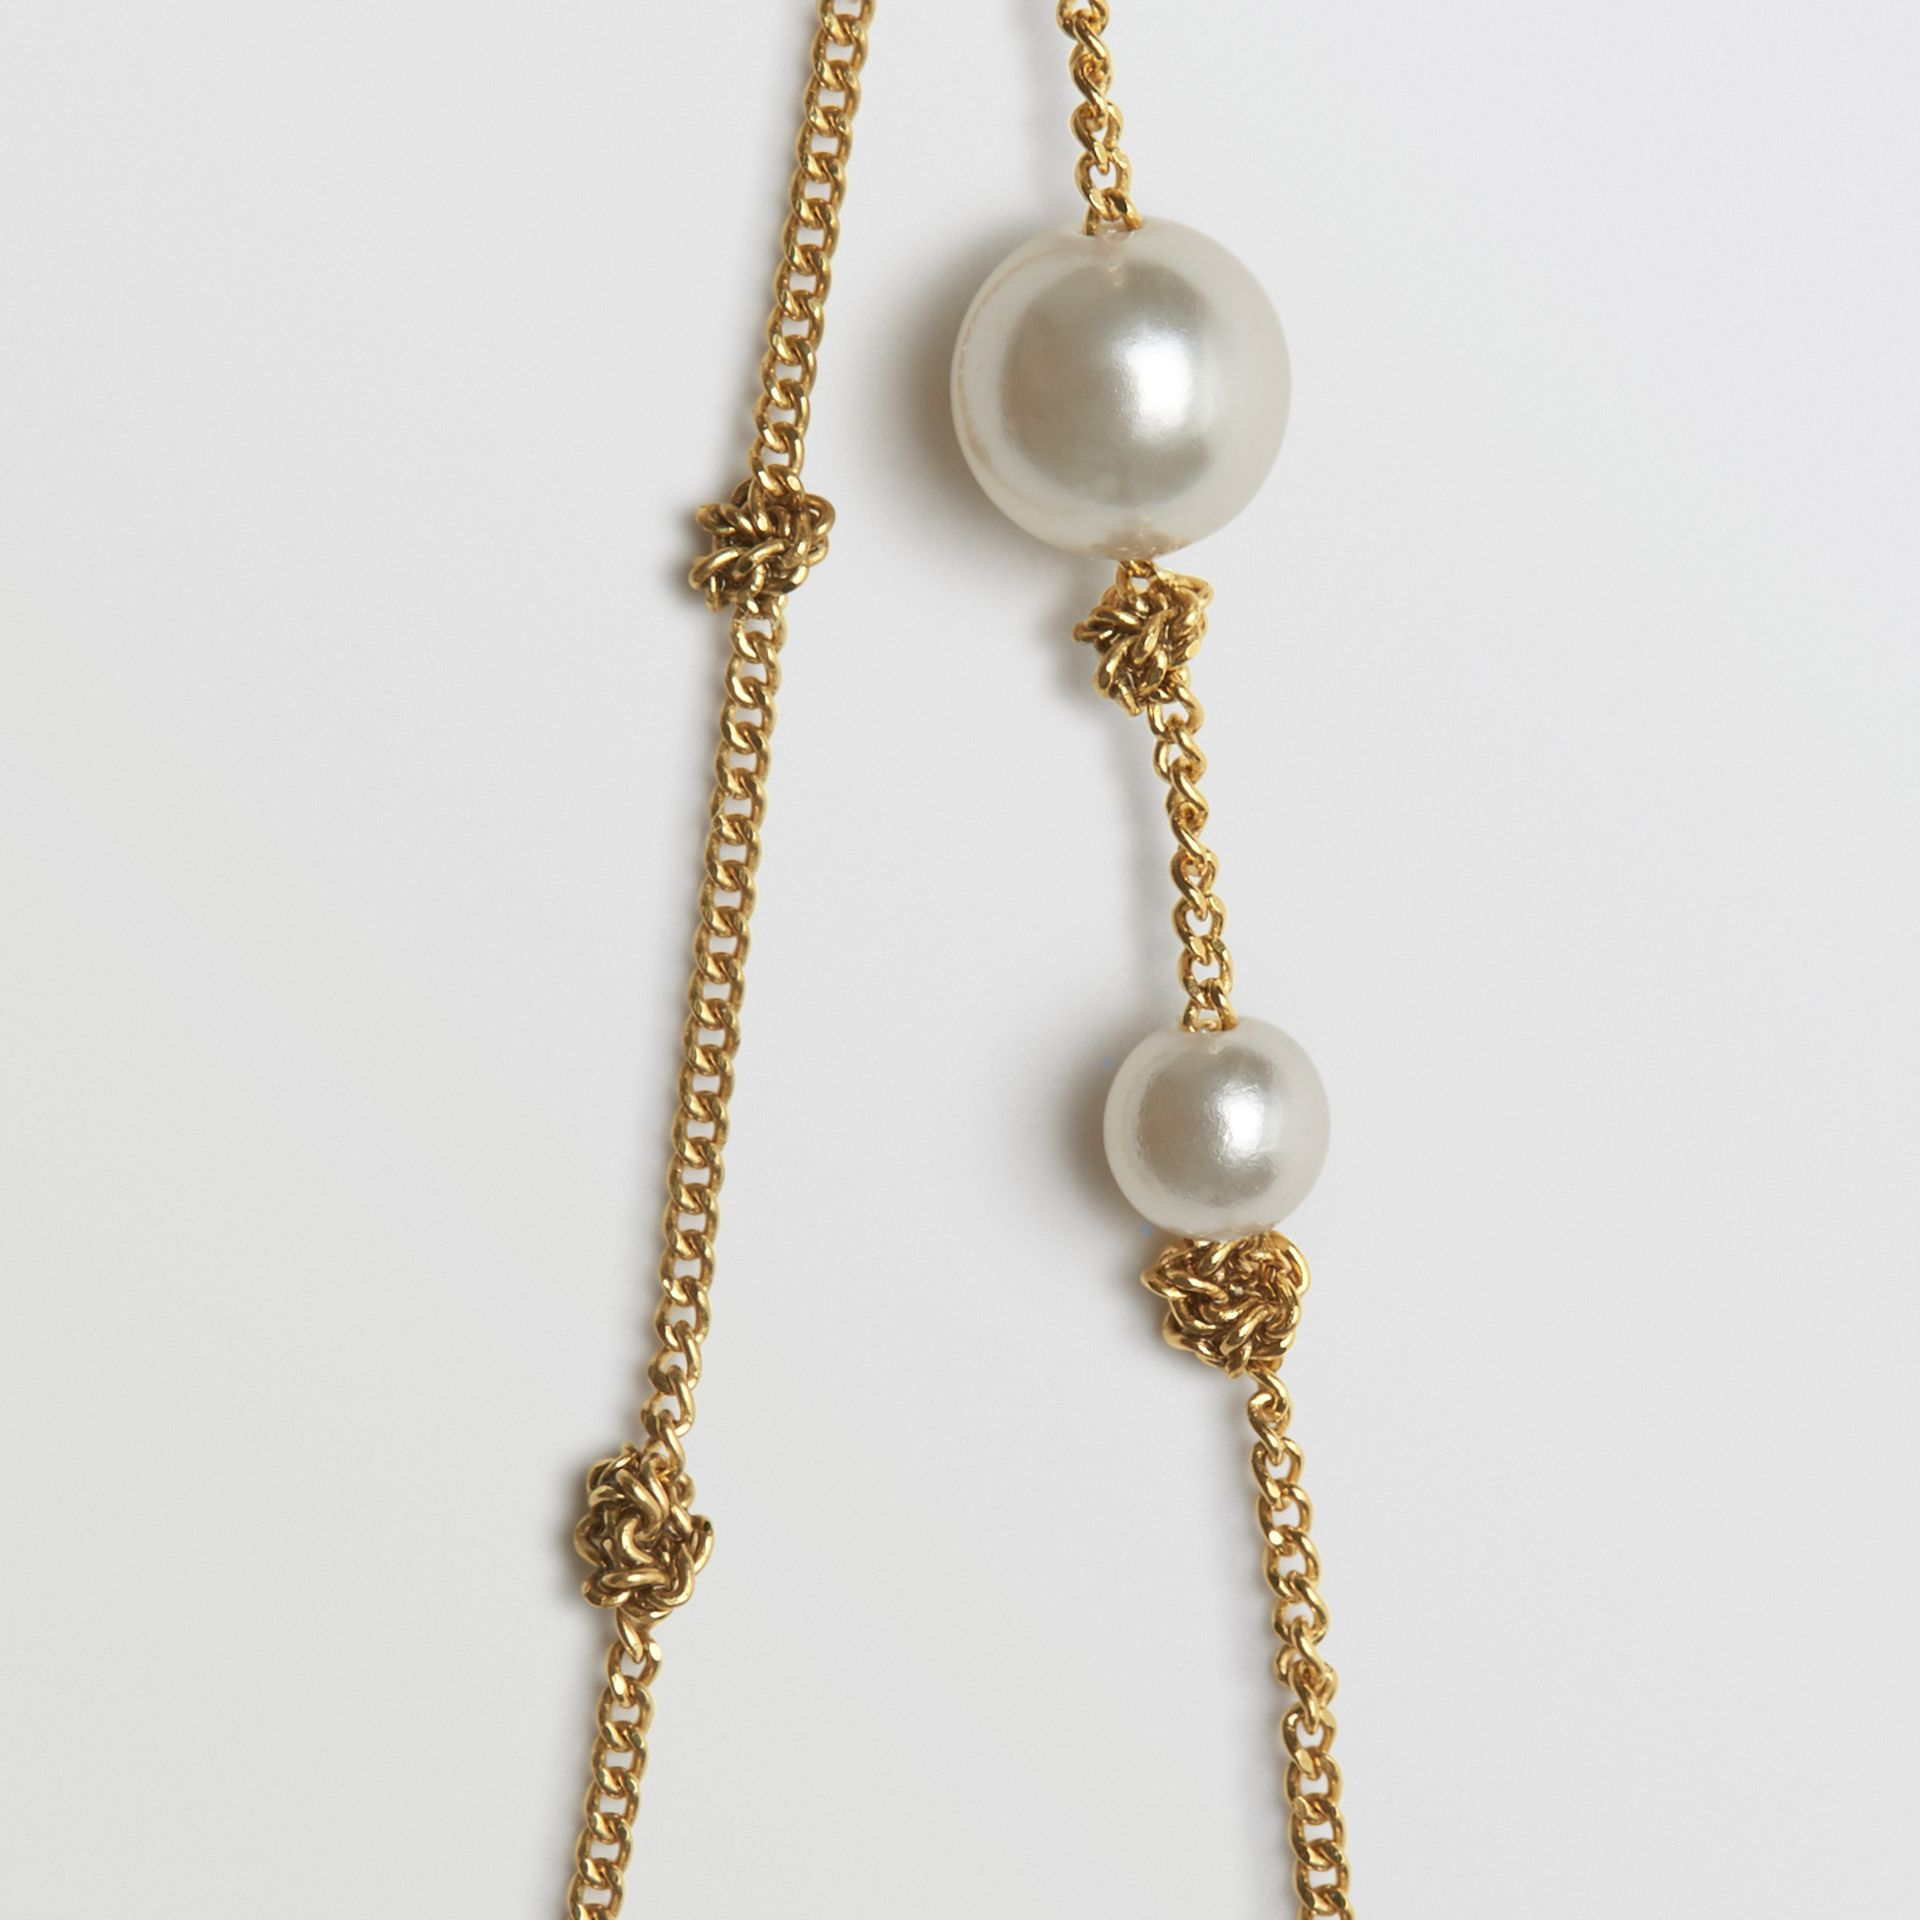 Faux Pearl Gold-plated Drop Earrings in Light - Women | Burberry - gallery image 2